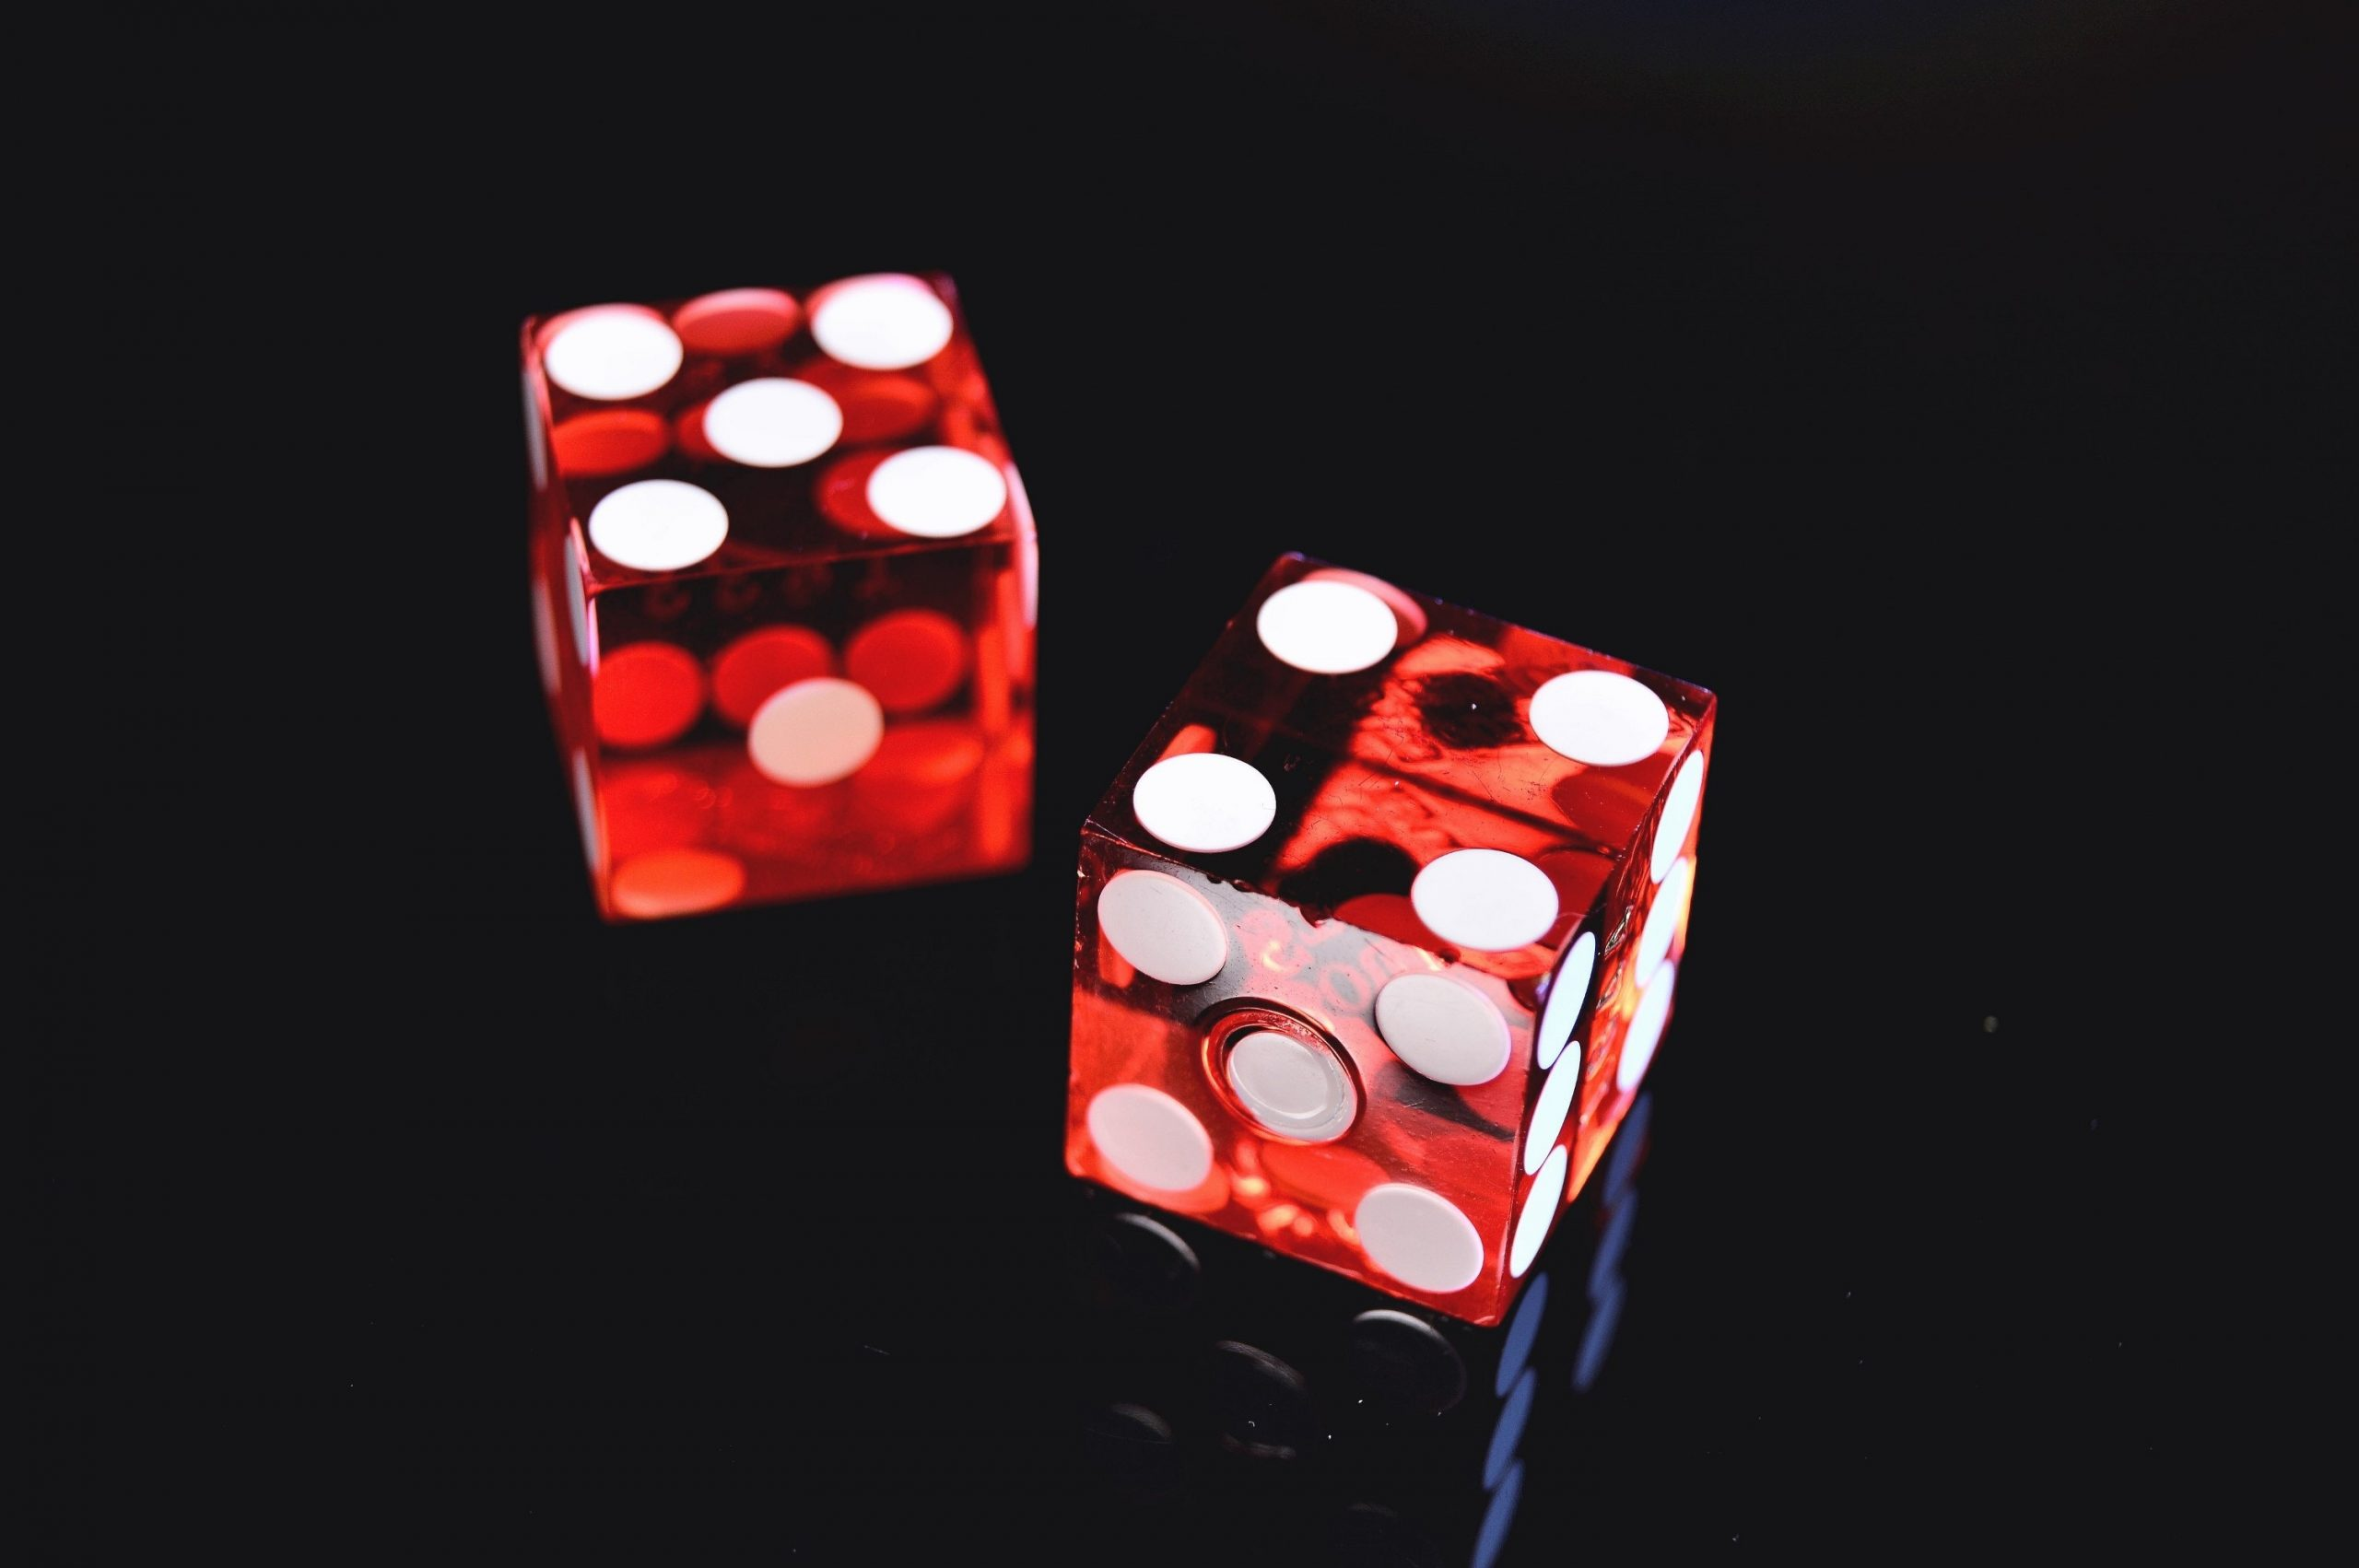 How To Buy Online Gambling On Tight Finances